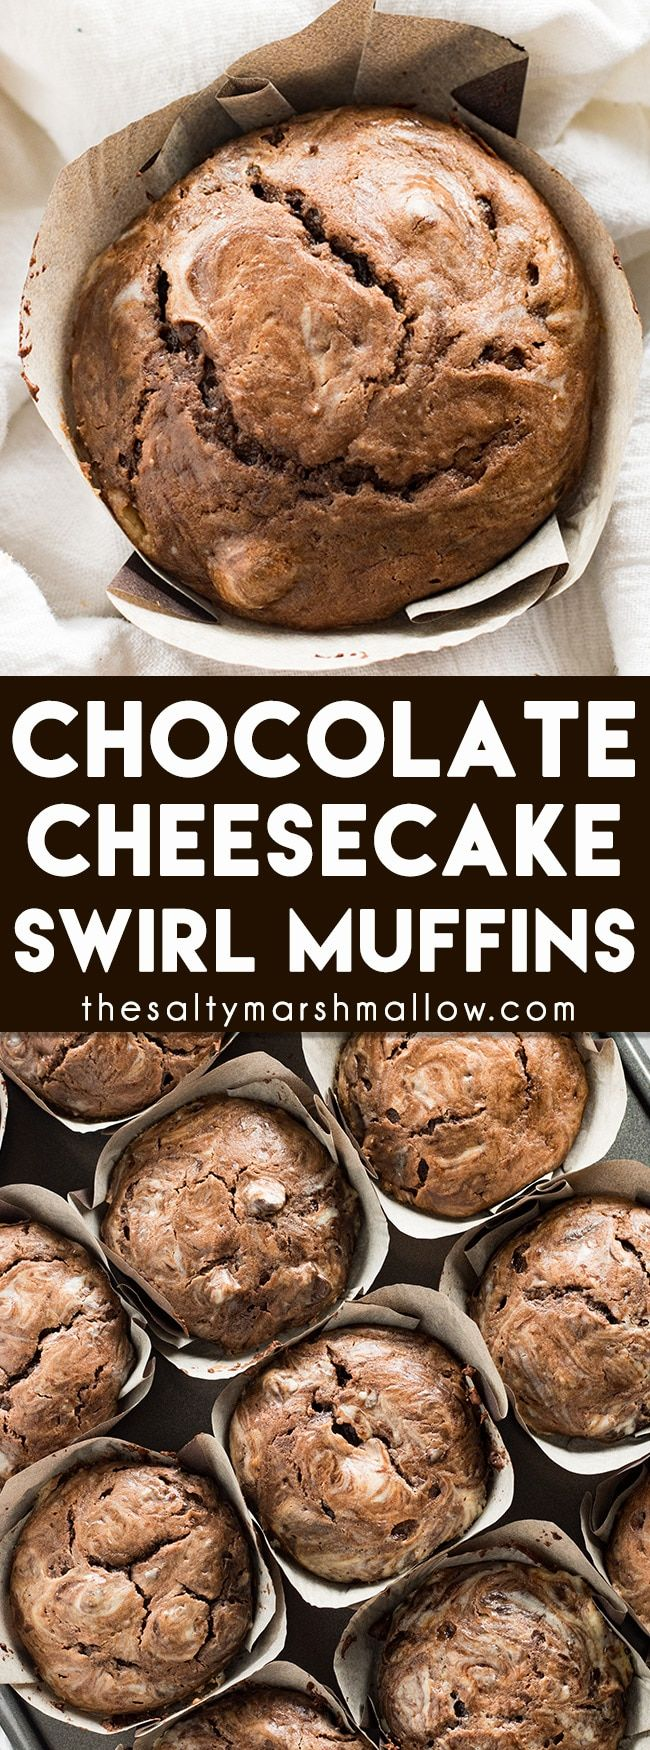 Chocolate Cheesecake Swirl Muffins - The best double chocolate muffins with a mouthwatering cream cheese swirl!  These cheesecake muffins are easy to make for the perfect decadent breakfast or brunch!